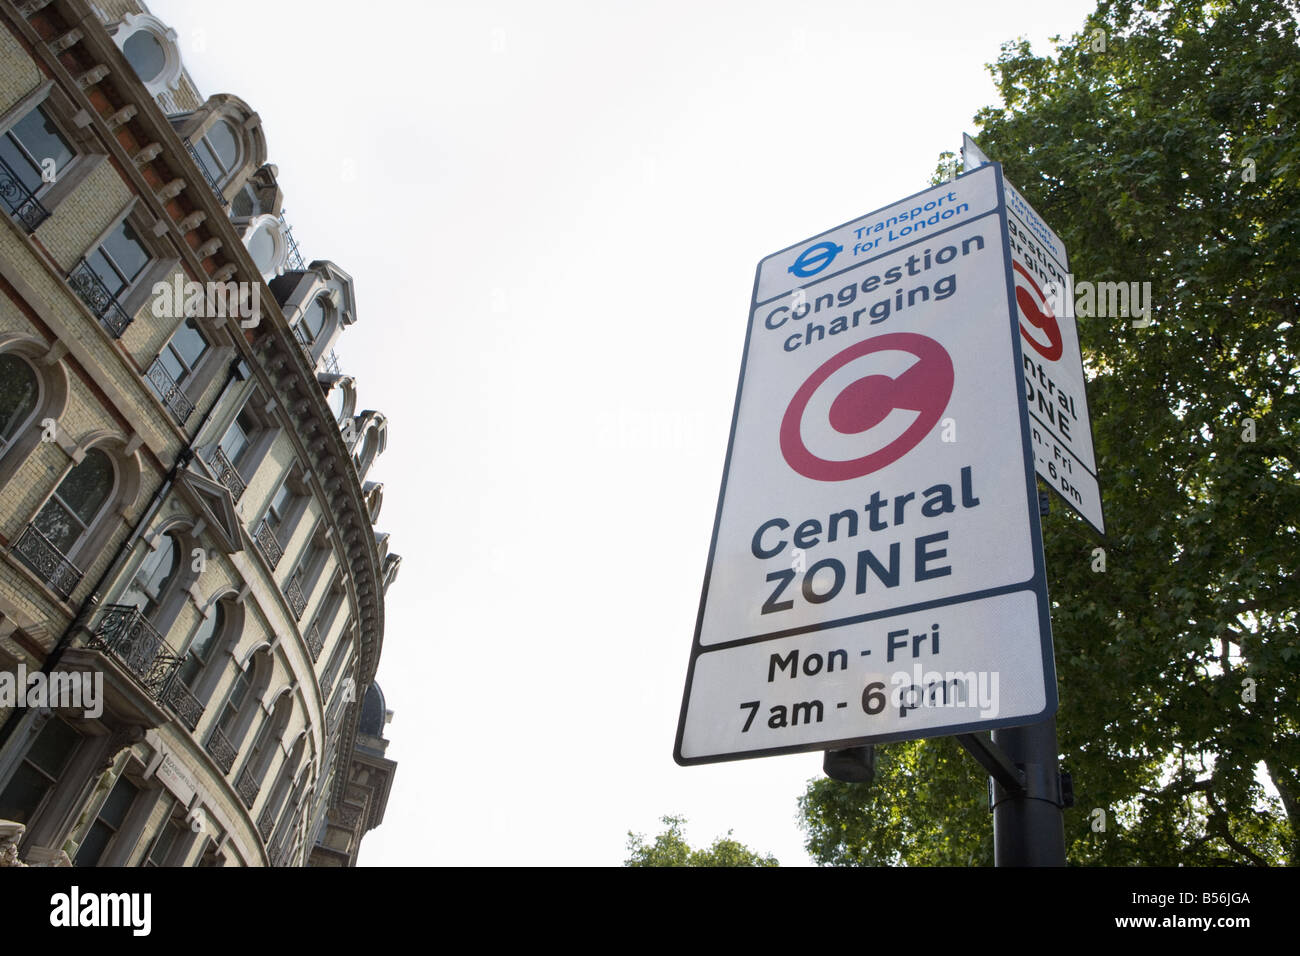 Congestion charge sign Photo Stock